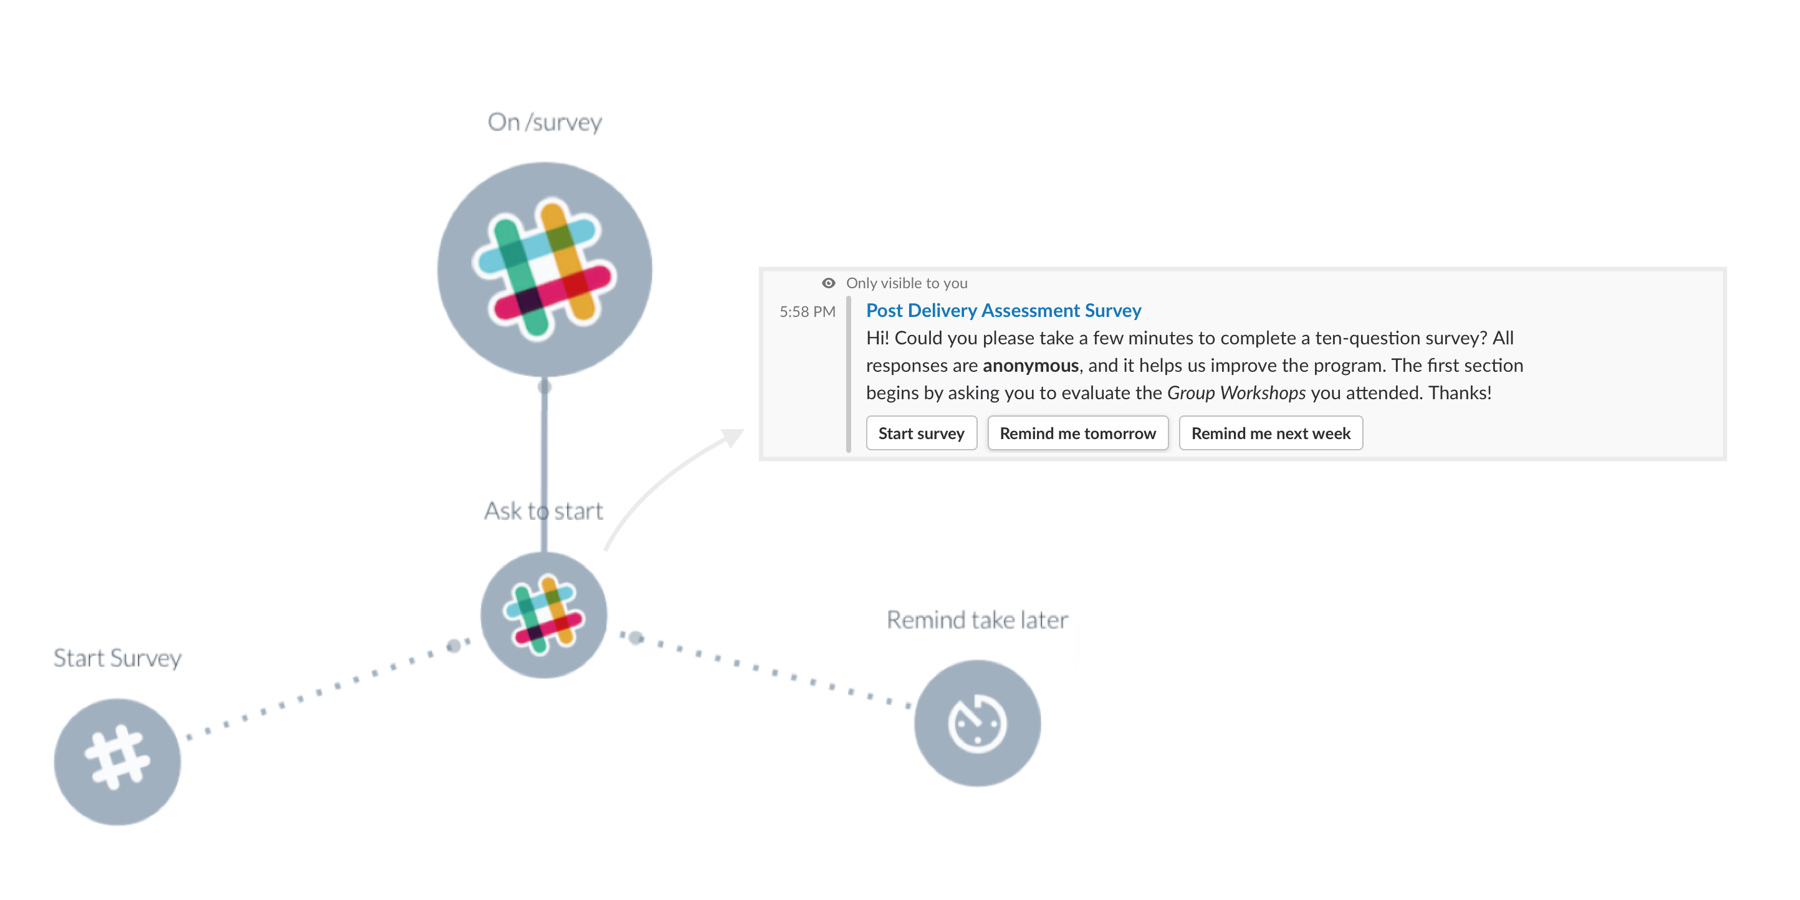 Modeling human conversations in Slack (like asking a question) is easy with Intwixt